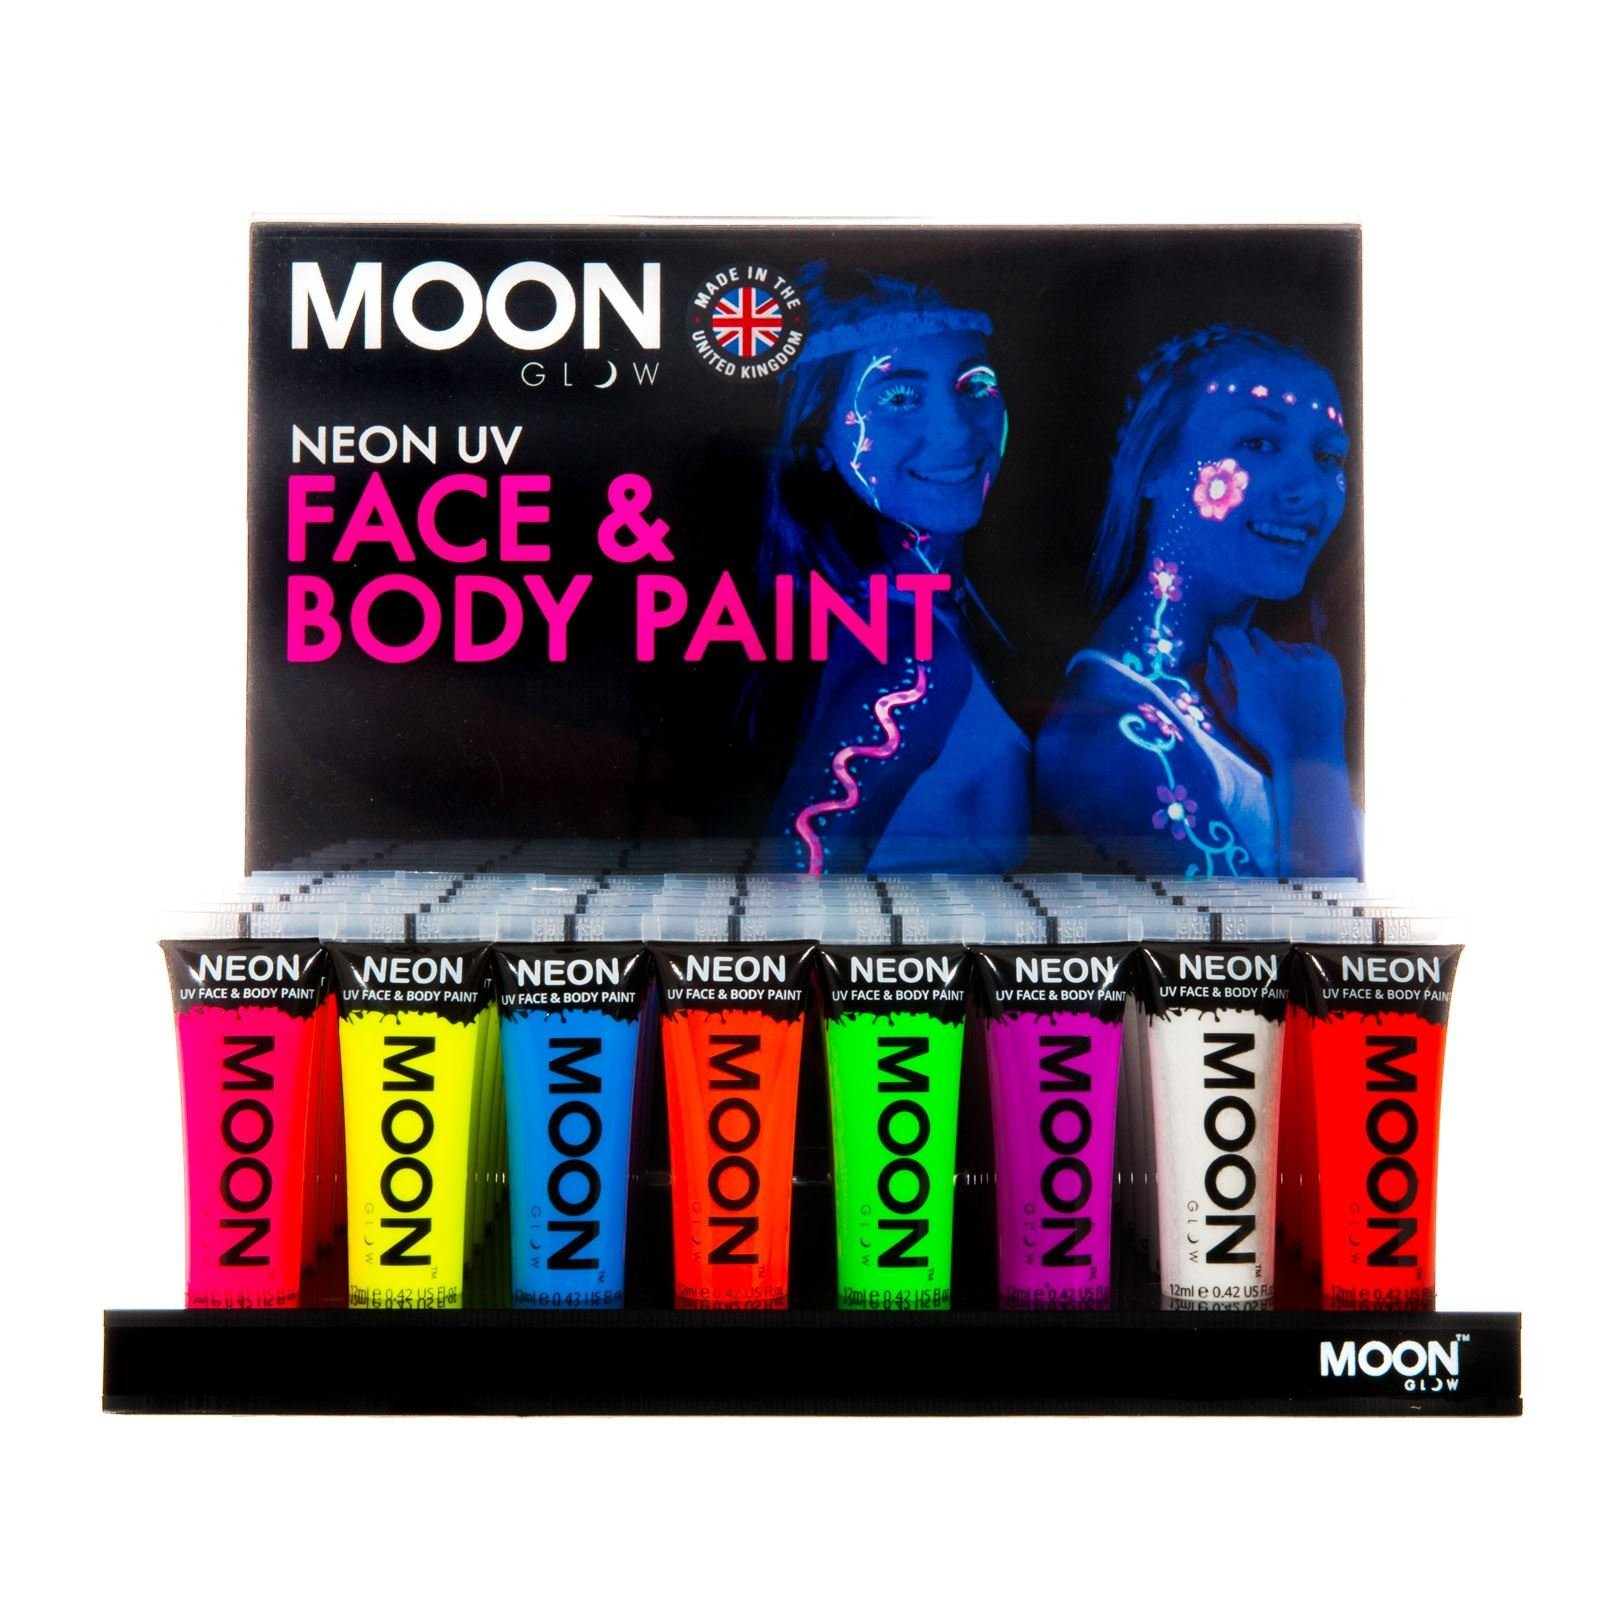 Moon Glow - Intense Neon UV Face & Body Paint - 0.42oz Display Case of 48 tubes - includes acrylic display stand